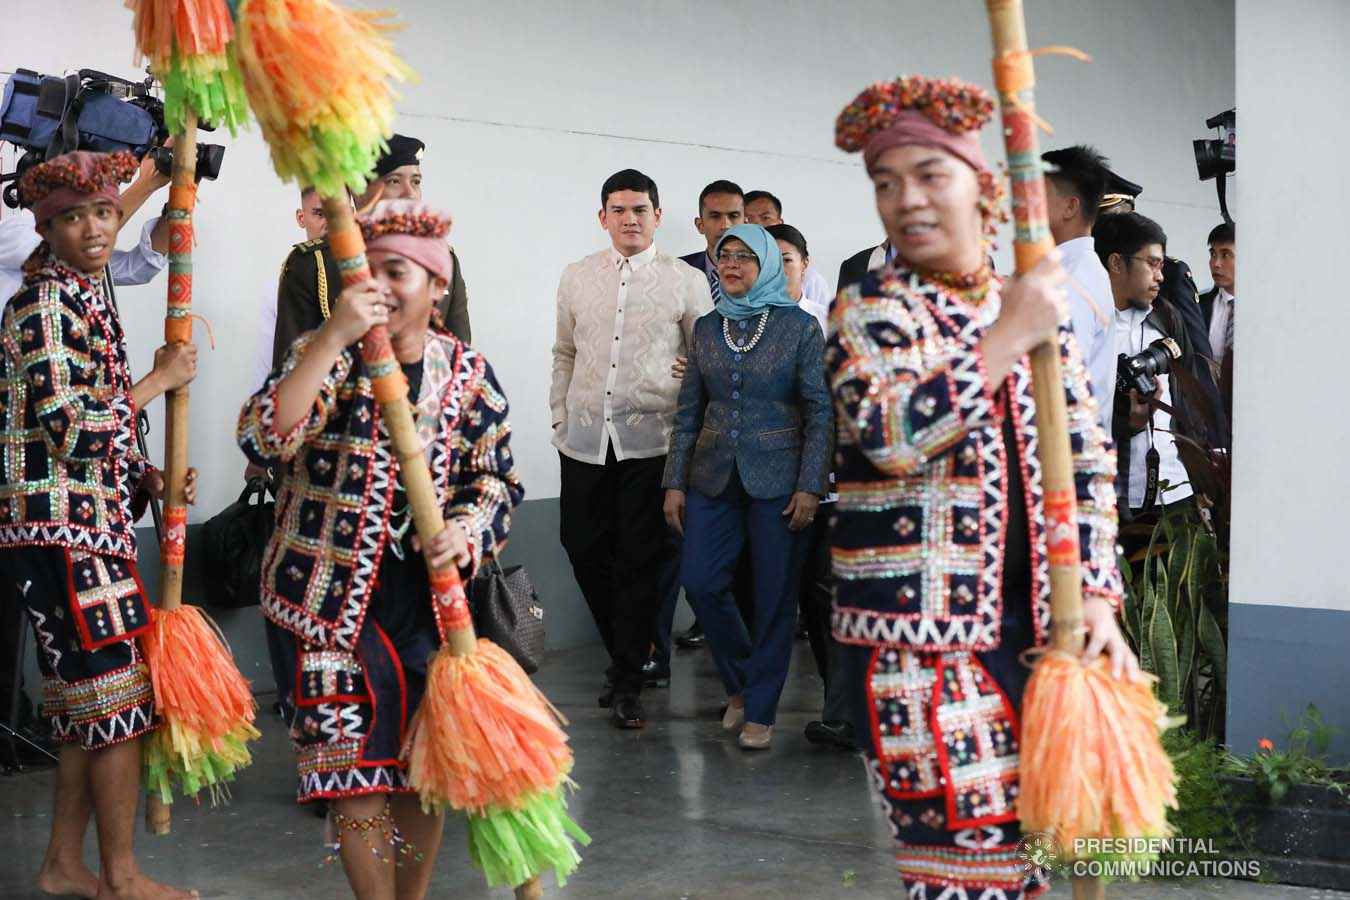 Republic of Singapore President Halimah Yacob is accompanied by Davao City Vice Mayor Sebastian Duterte as she is entertained by cultural performers upon her arrival at the Davao International Airport in Davao City on September 10, 2019. KARL NORMAN ALONZO/PRESIDENTIAL PHOTO